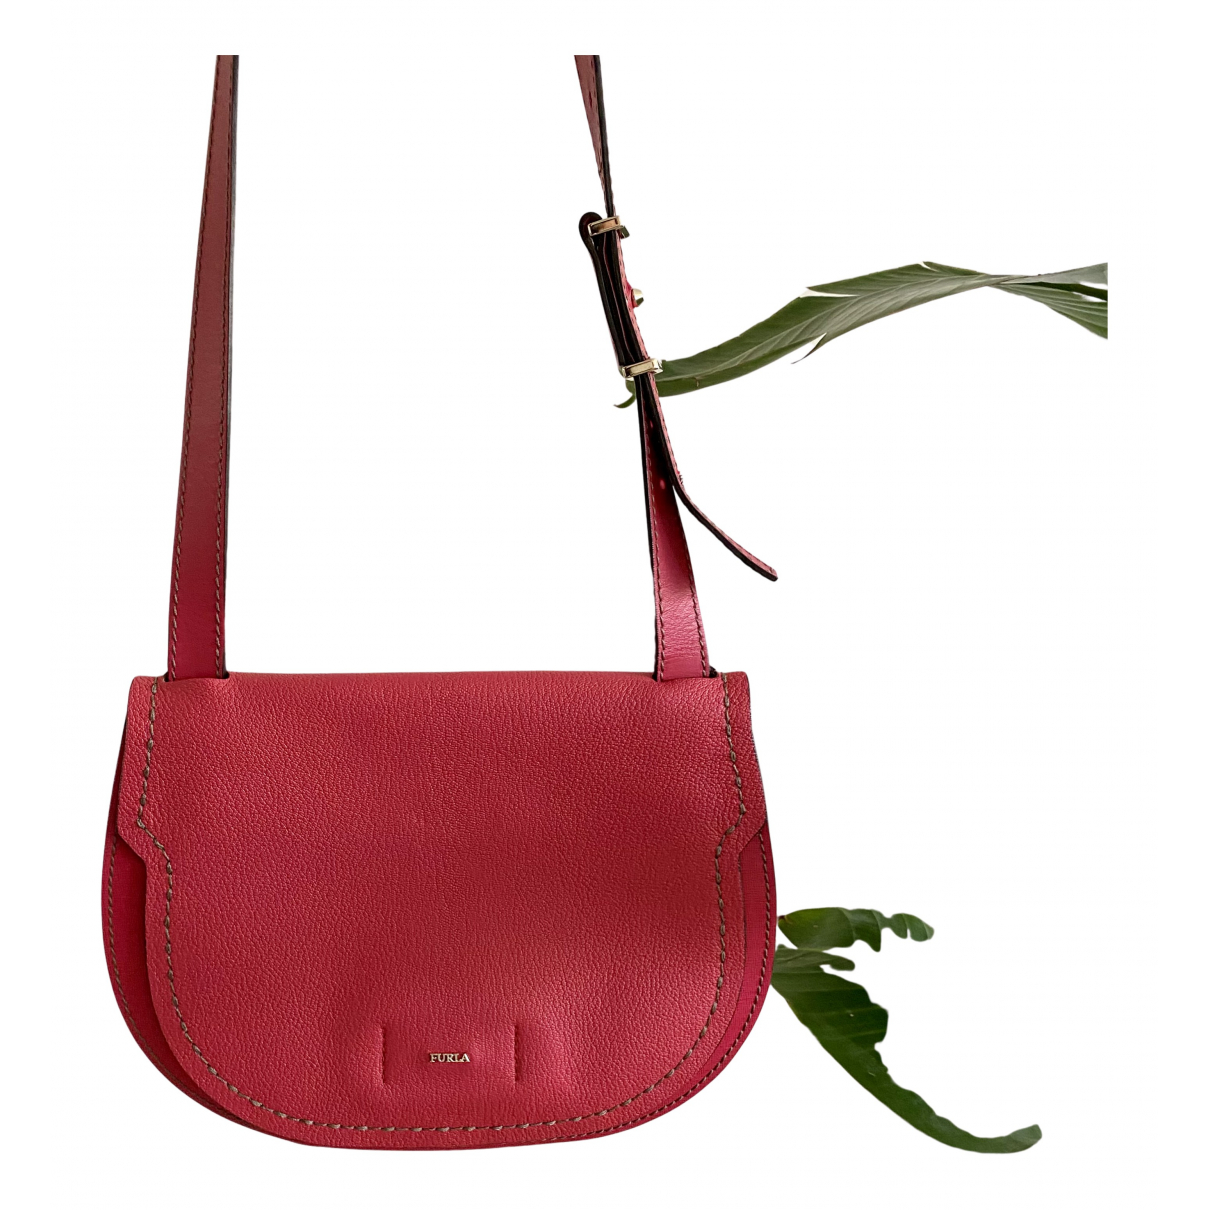 Furla N Red Leather handbag for Women N